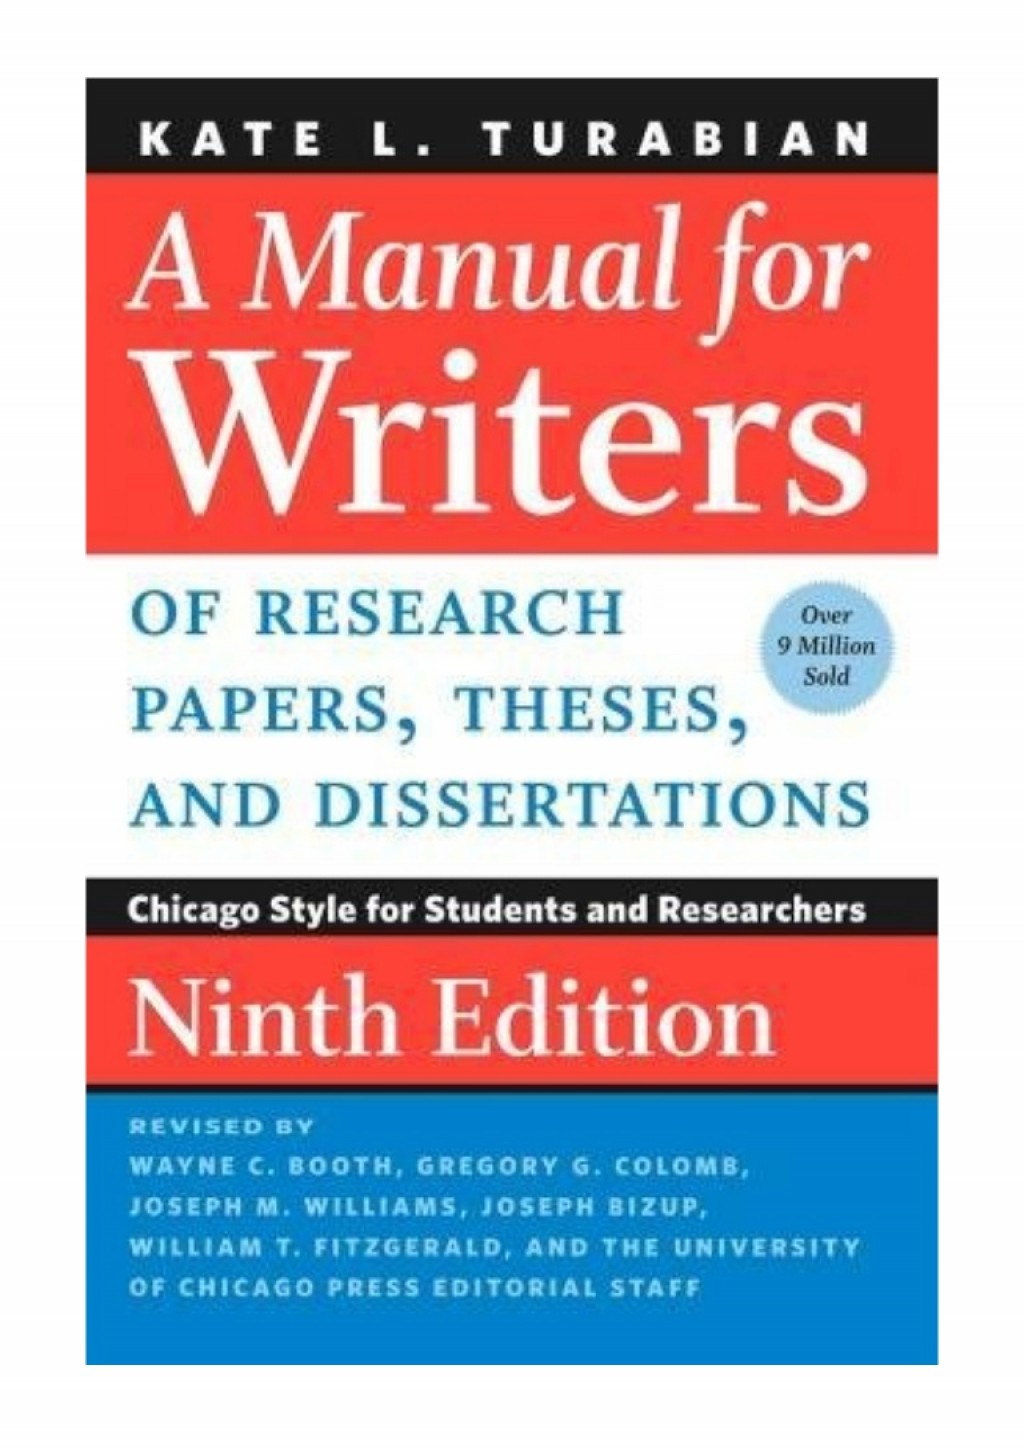 008 Research Paper 022643057x Amanualforwritersofresearchpapersthesesanddissertationsnintheditionbykatel Thumbnail Manual For Writers Of Papers Theses And Amazing A Dissertations Turabian Pdf Large